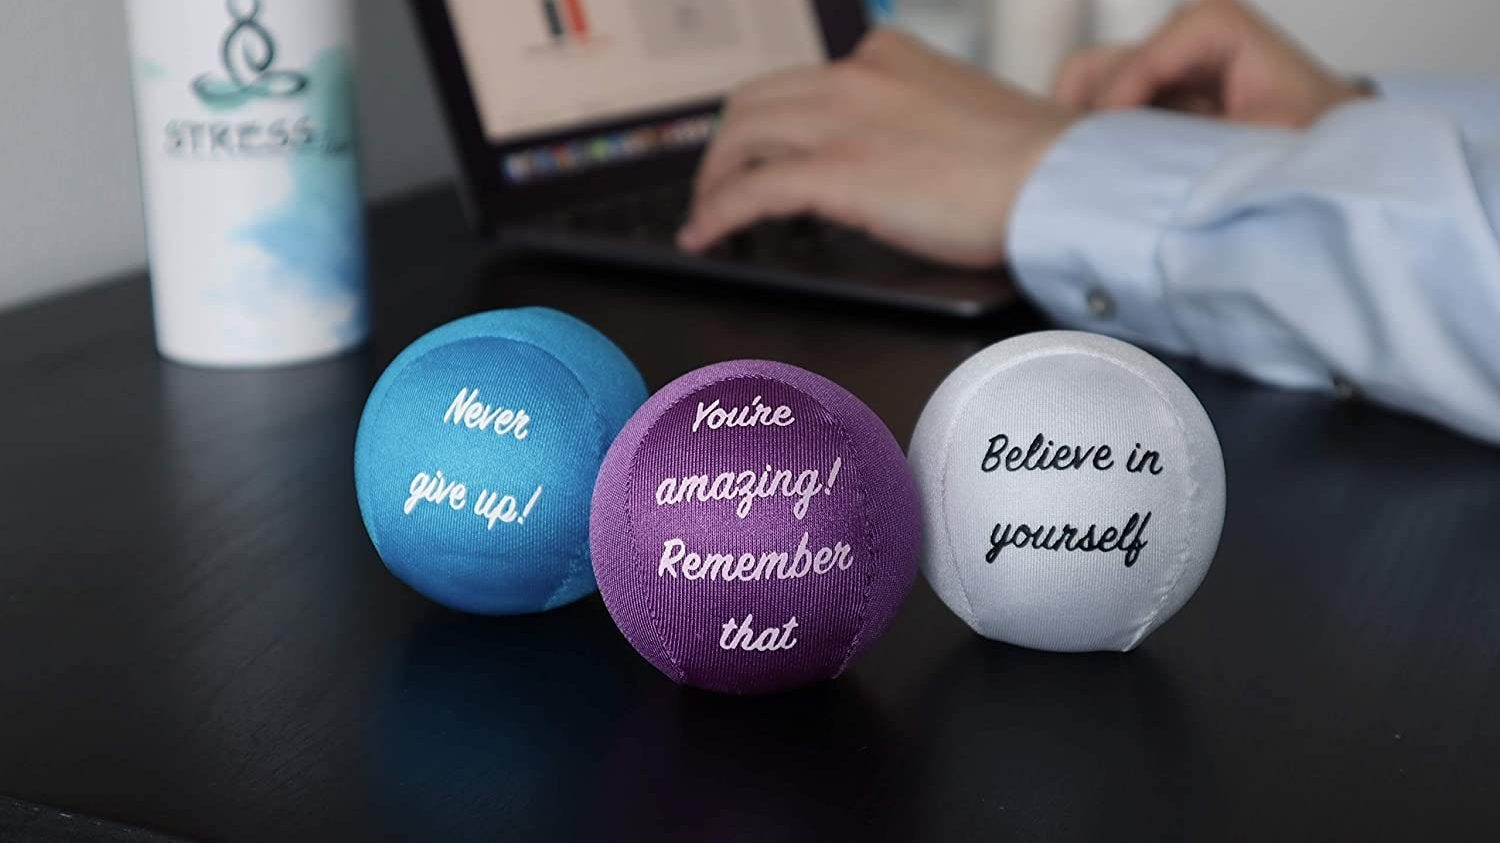 Three stress balls with motivational quotes.